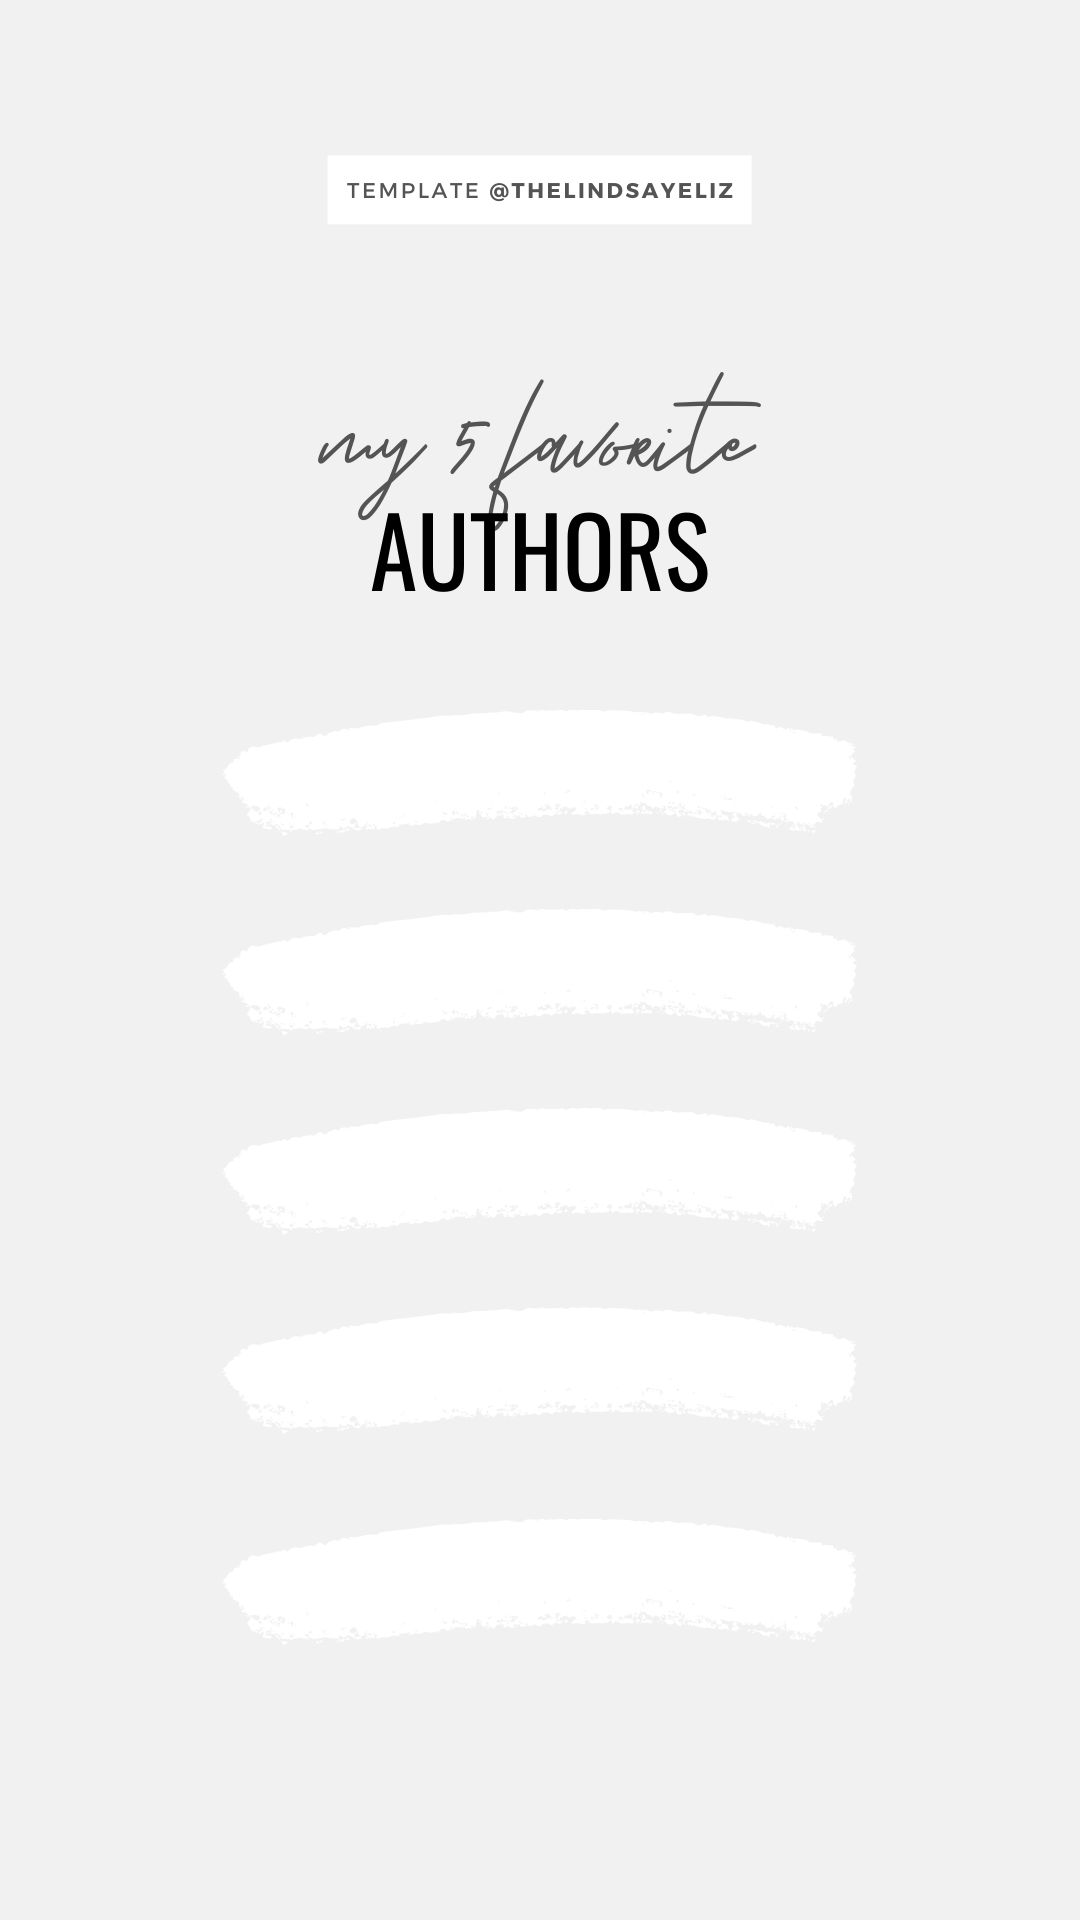 Share your five favorite authors with this bookish IG template. Be sure to also click through for more Instagram story templates for book lovers to share your favorite books, preferences, and opinions with your followers. #bookish #igstories #igtemplates #templates #bookastagram